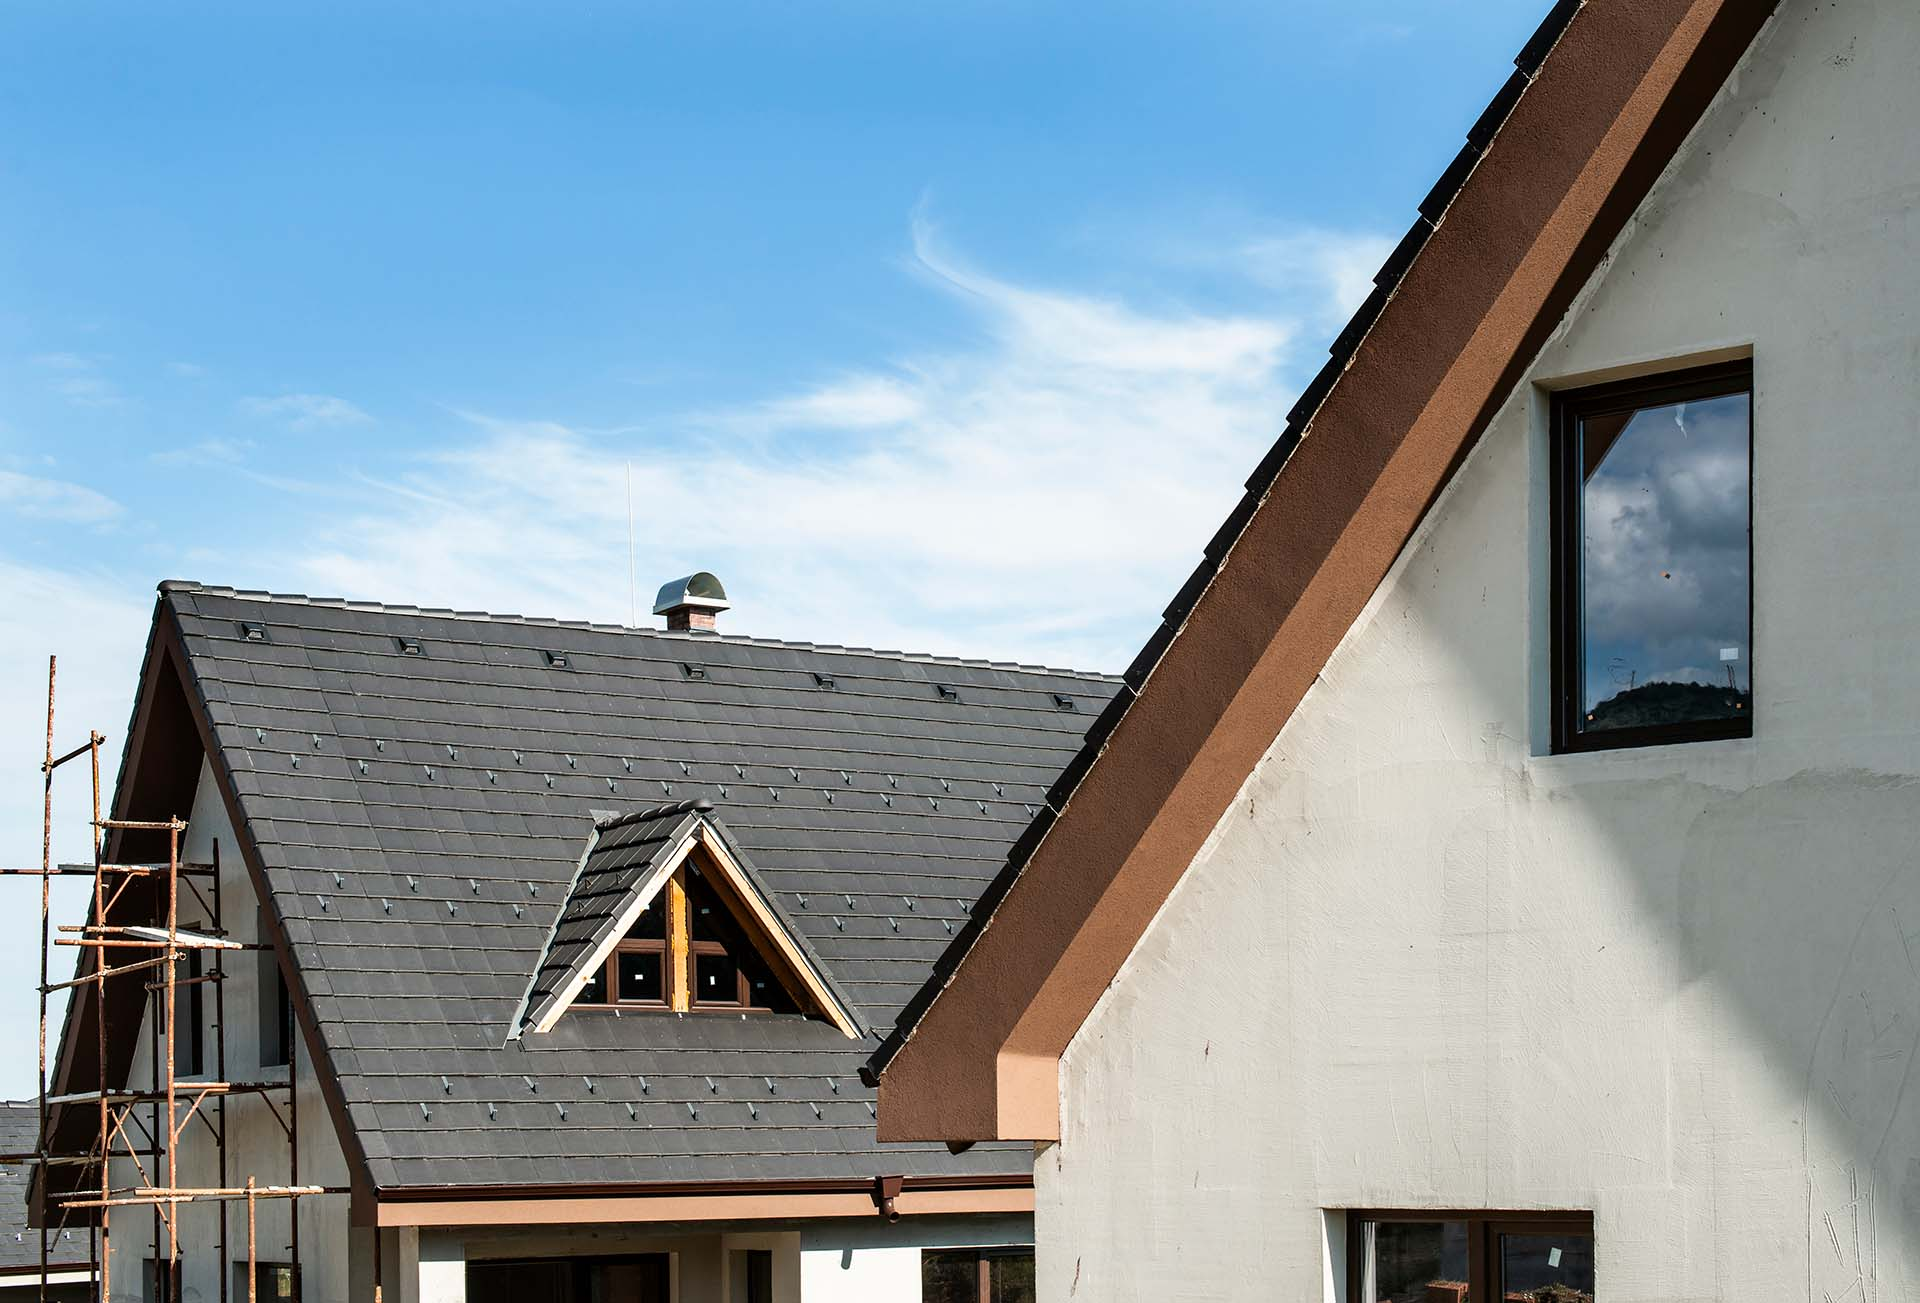 What are good questions to ask a roofer?